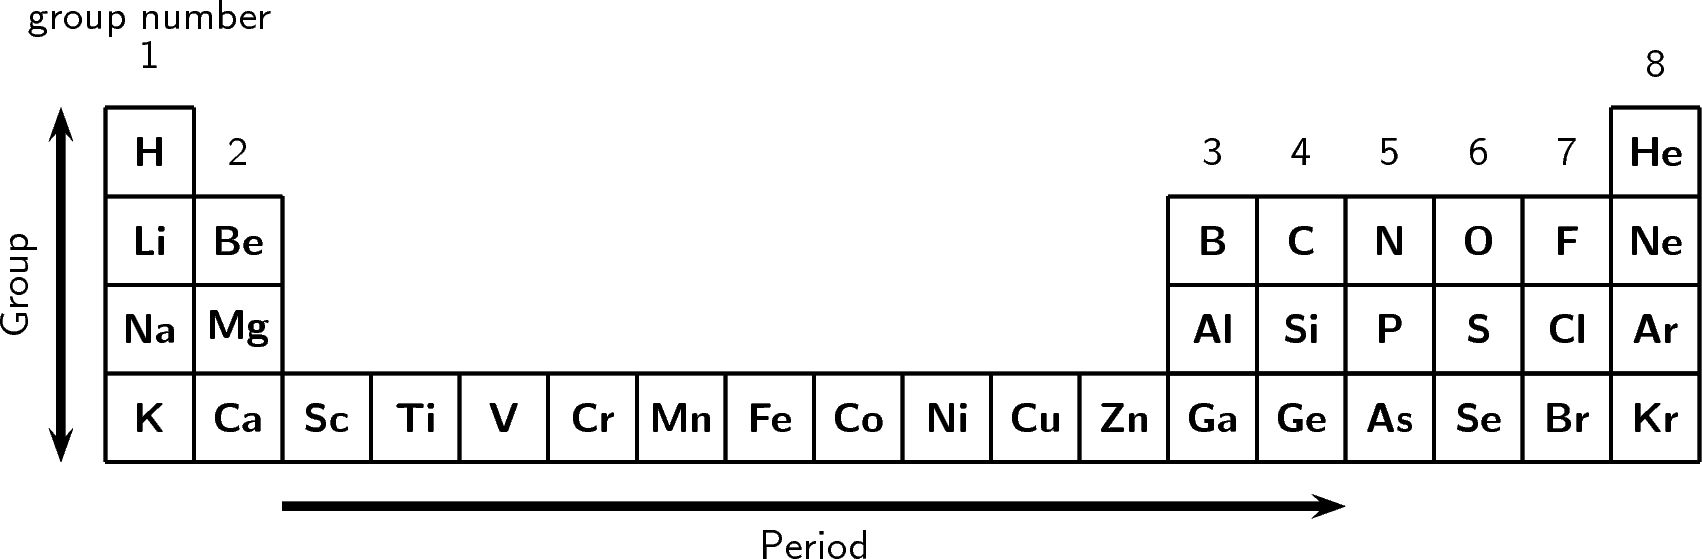 The Periodic Table Groups And Periods Permalink Testing